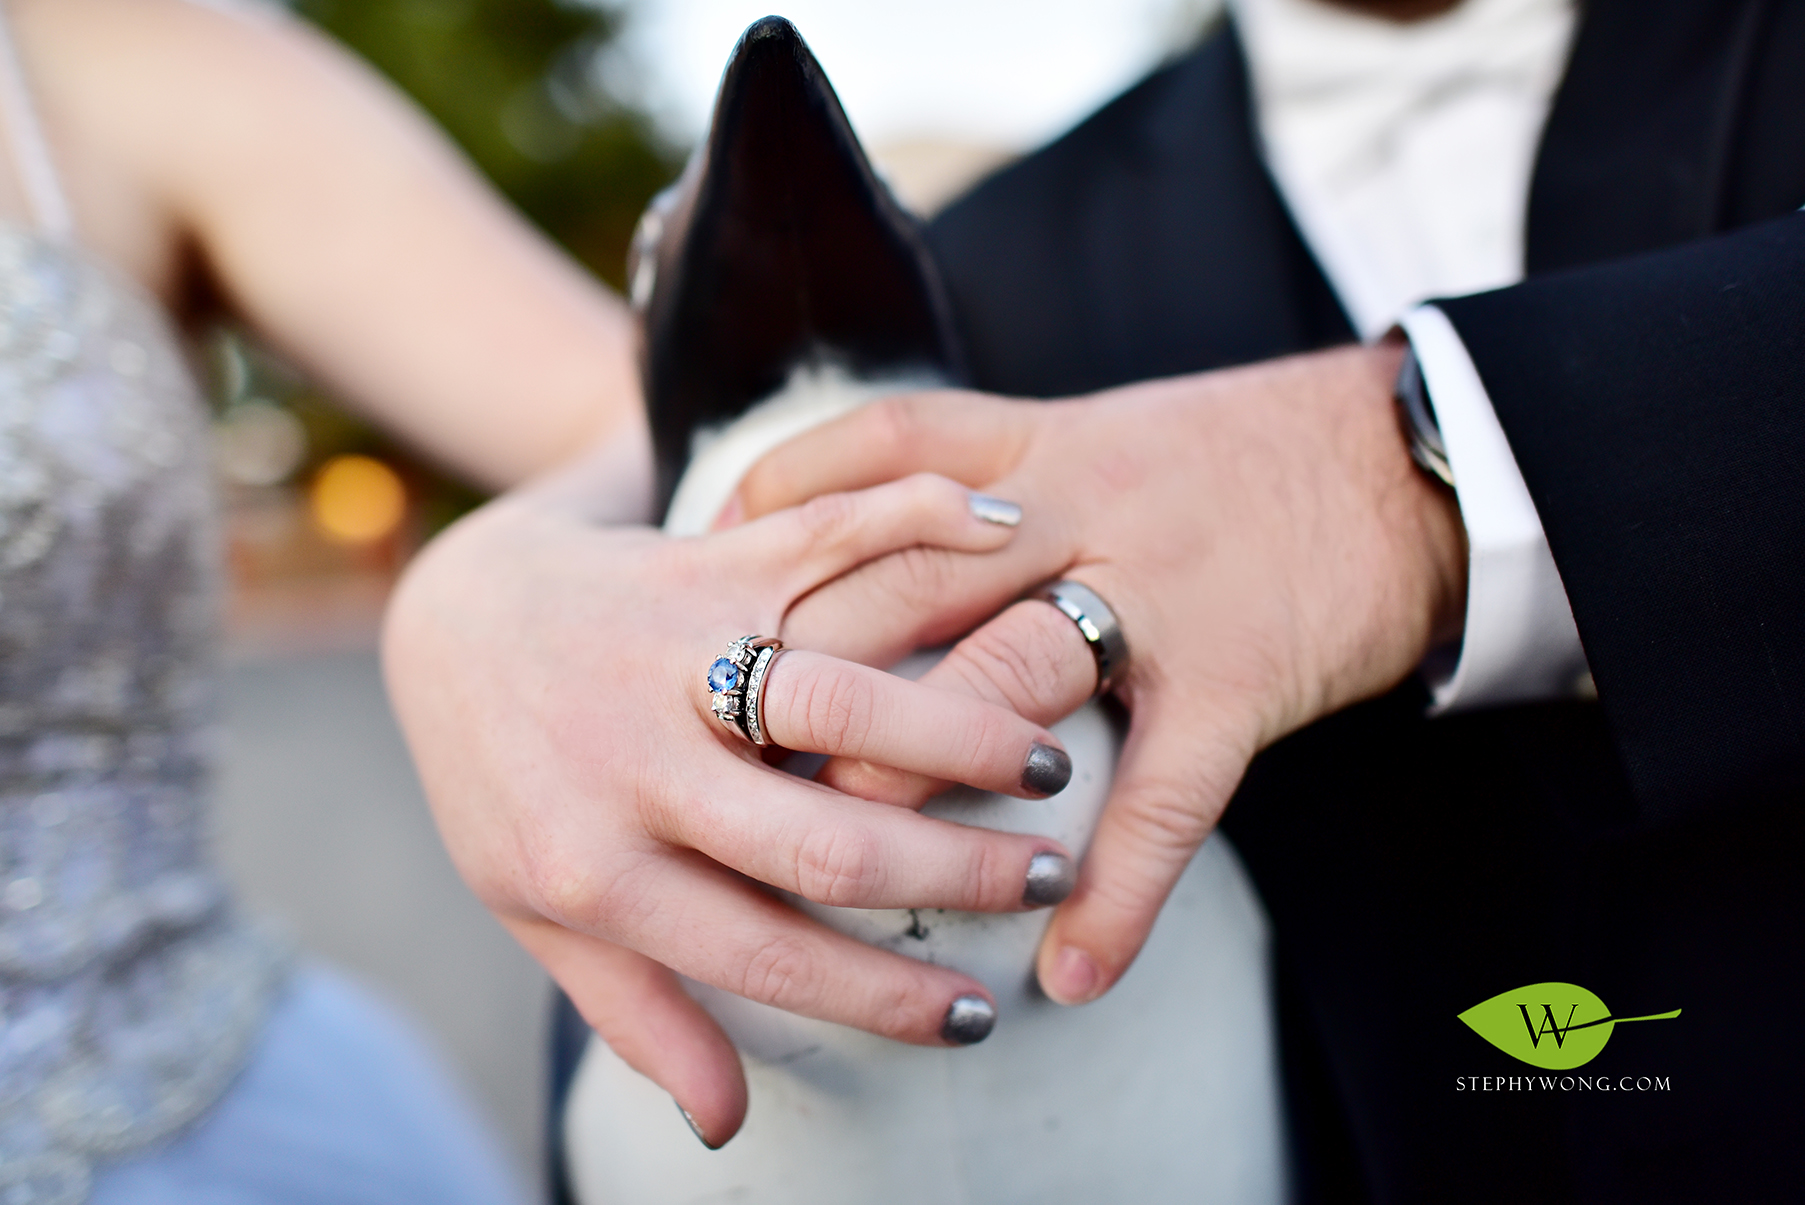 Stephy Wong Photography (Blog) » Stacy + Justin Wedding Teases ...